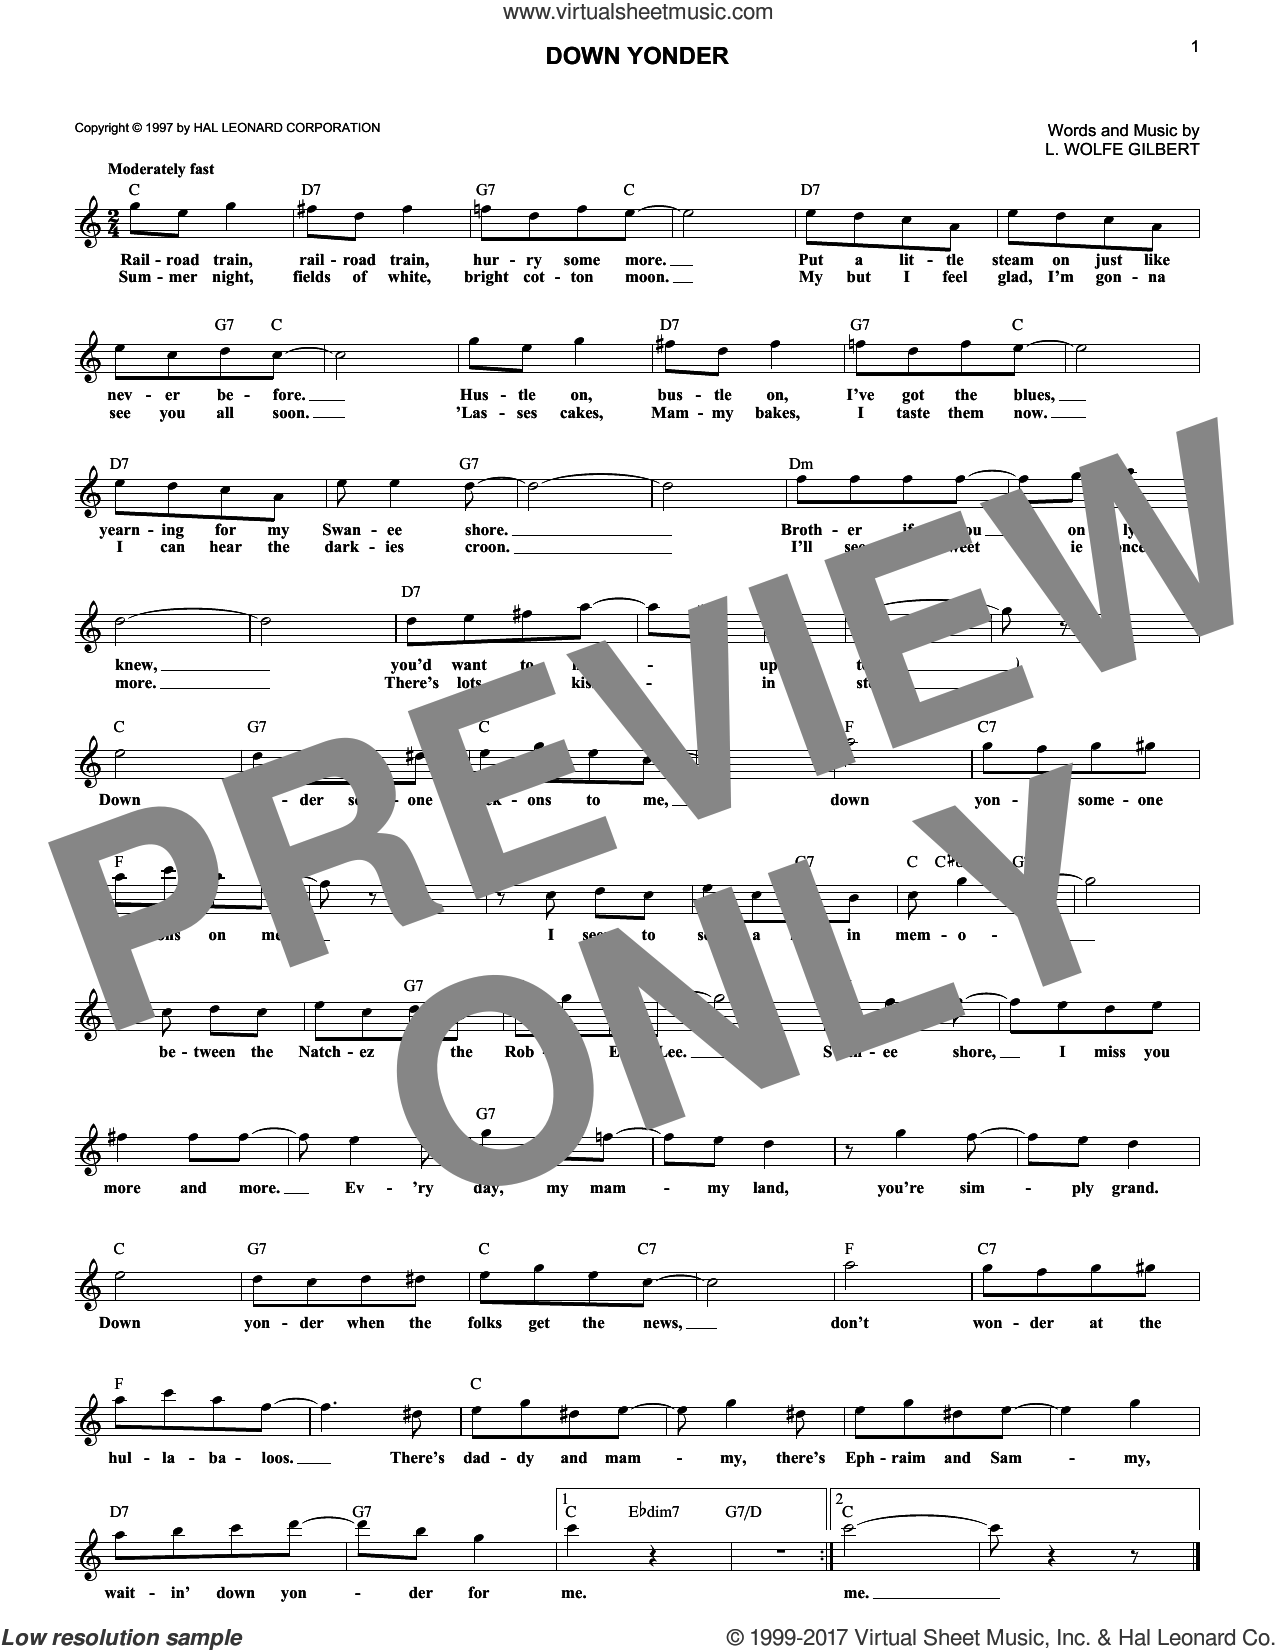 Down Yonder sheet music for voice and other instruments (fake book) by L. Wolfe Gilbert. Score Image Preview.